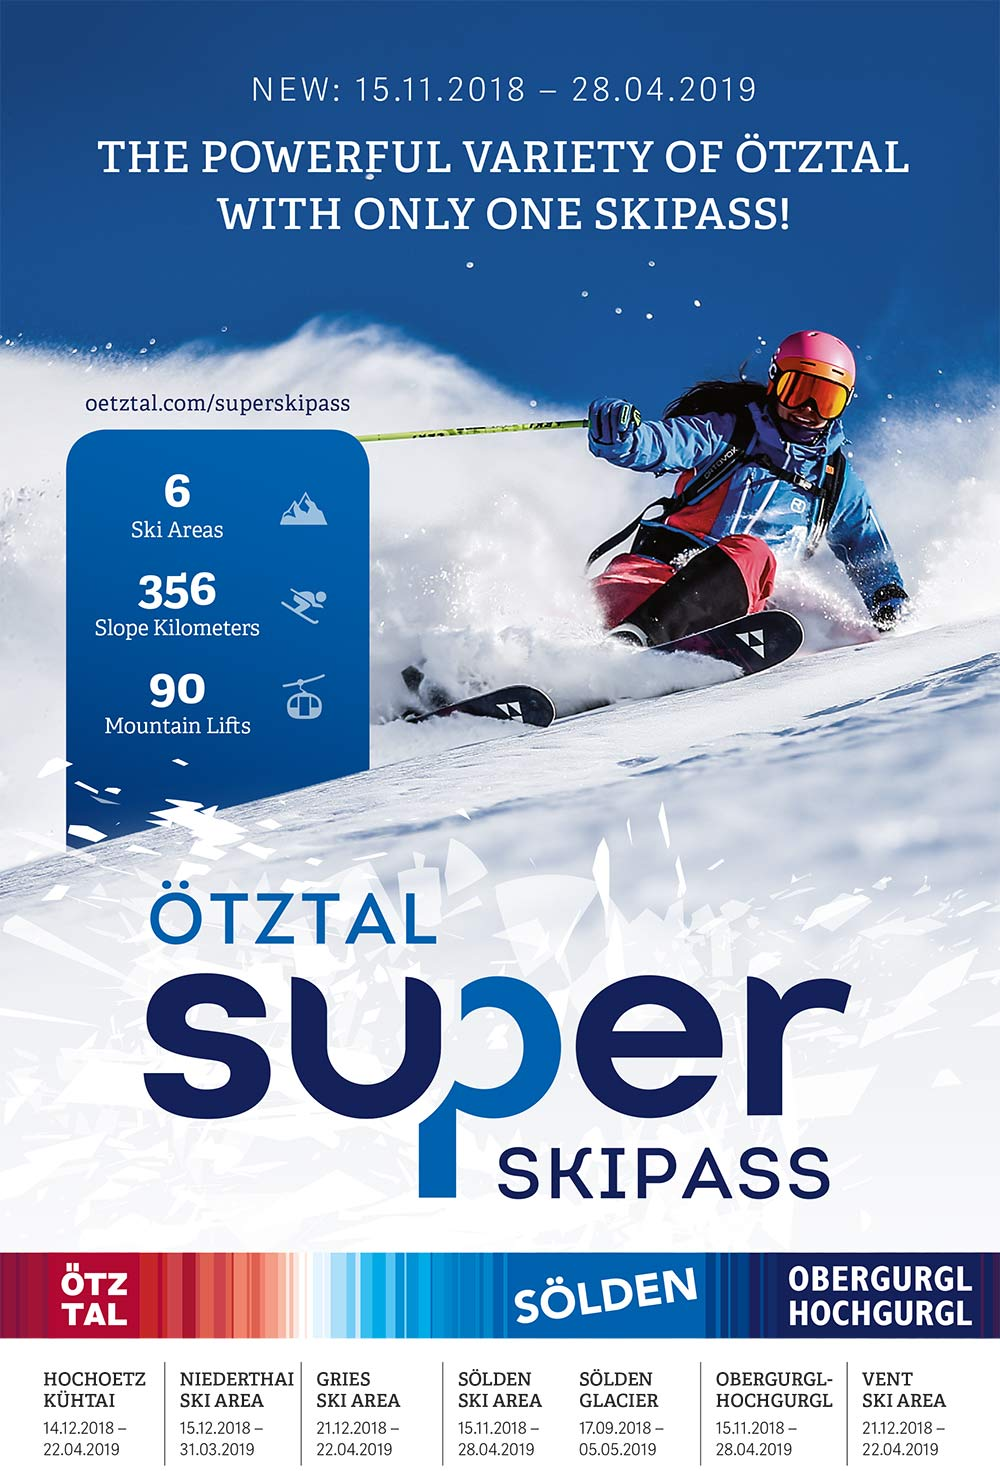 The new Ötztal Super Ski Pass